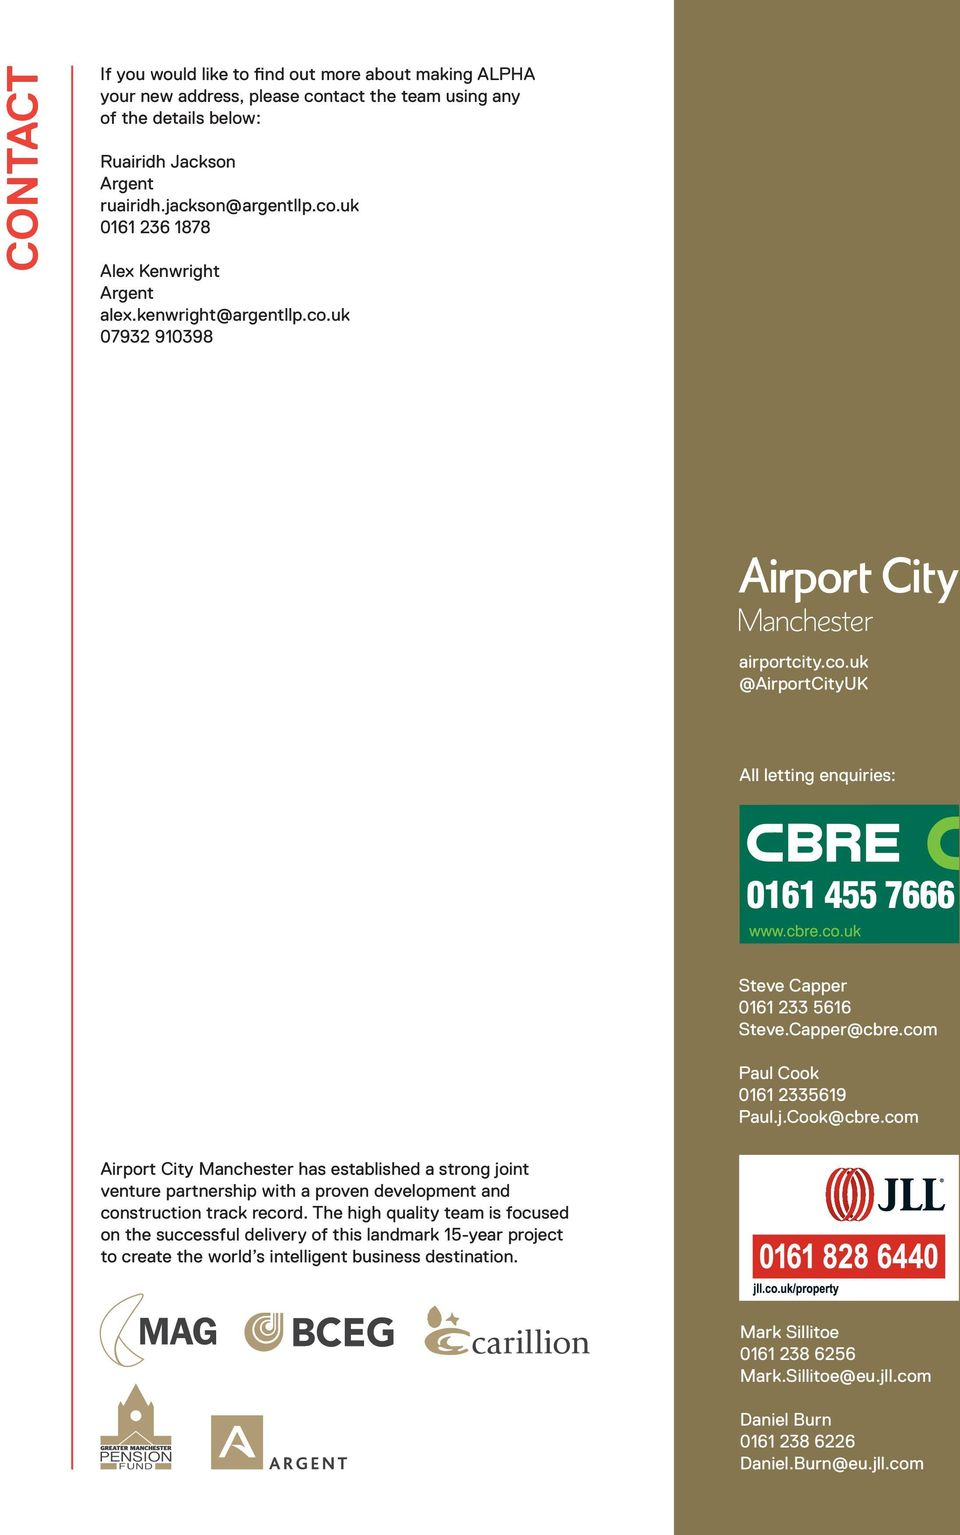 com Airport City Manchester has established a strong joint venture partnership with a proven development and construction track record.